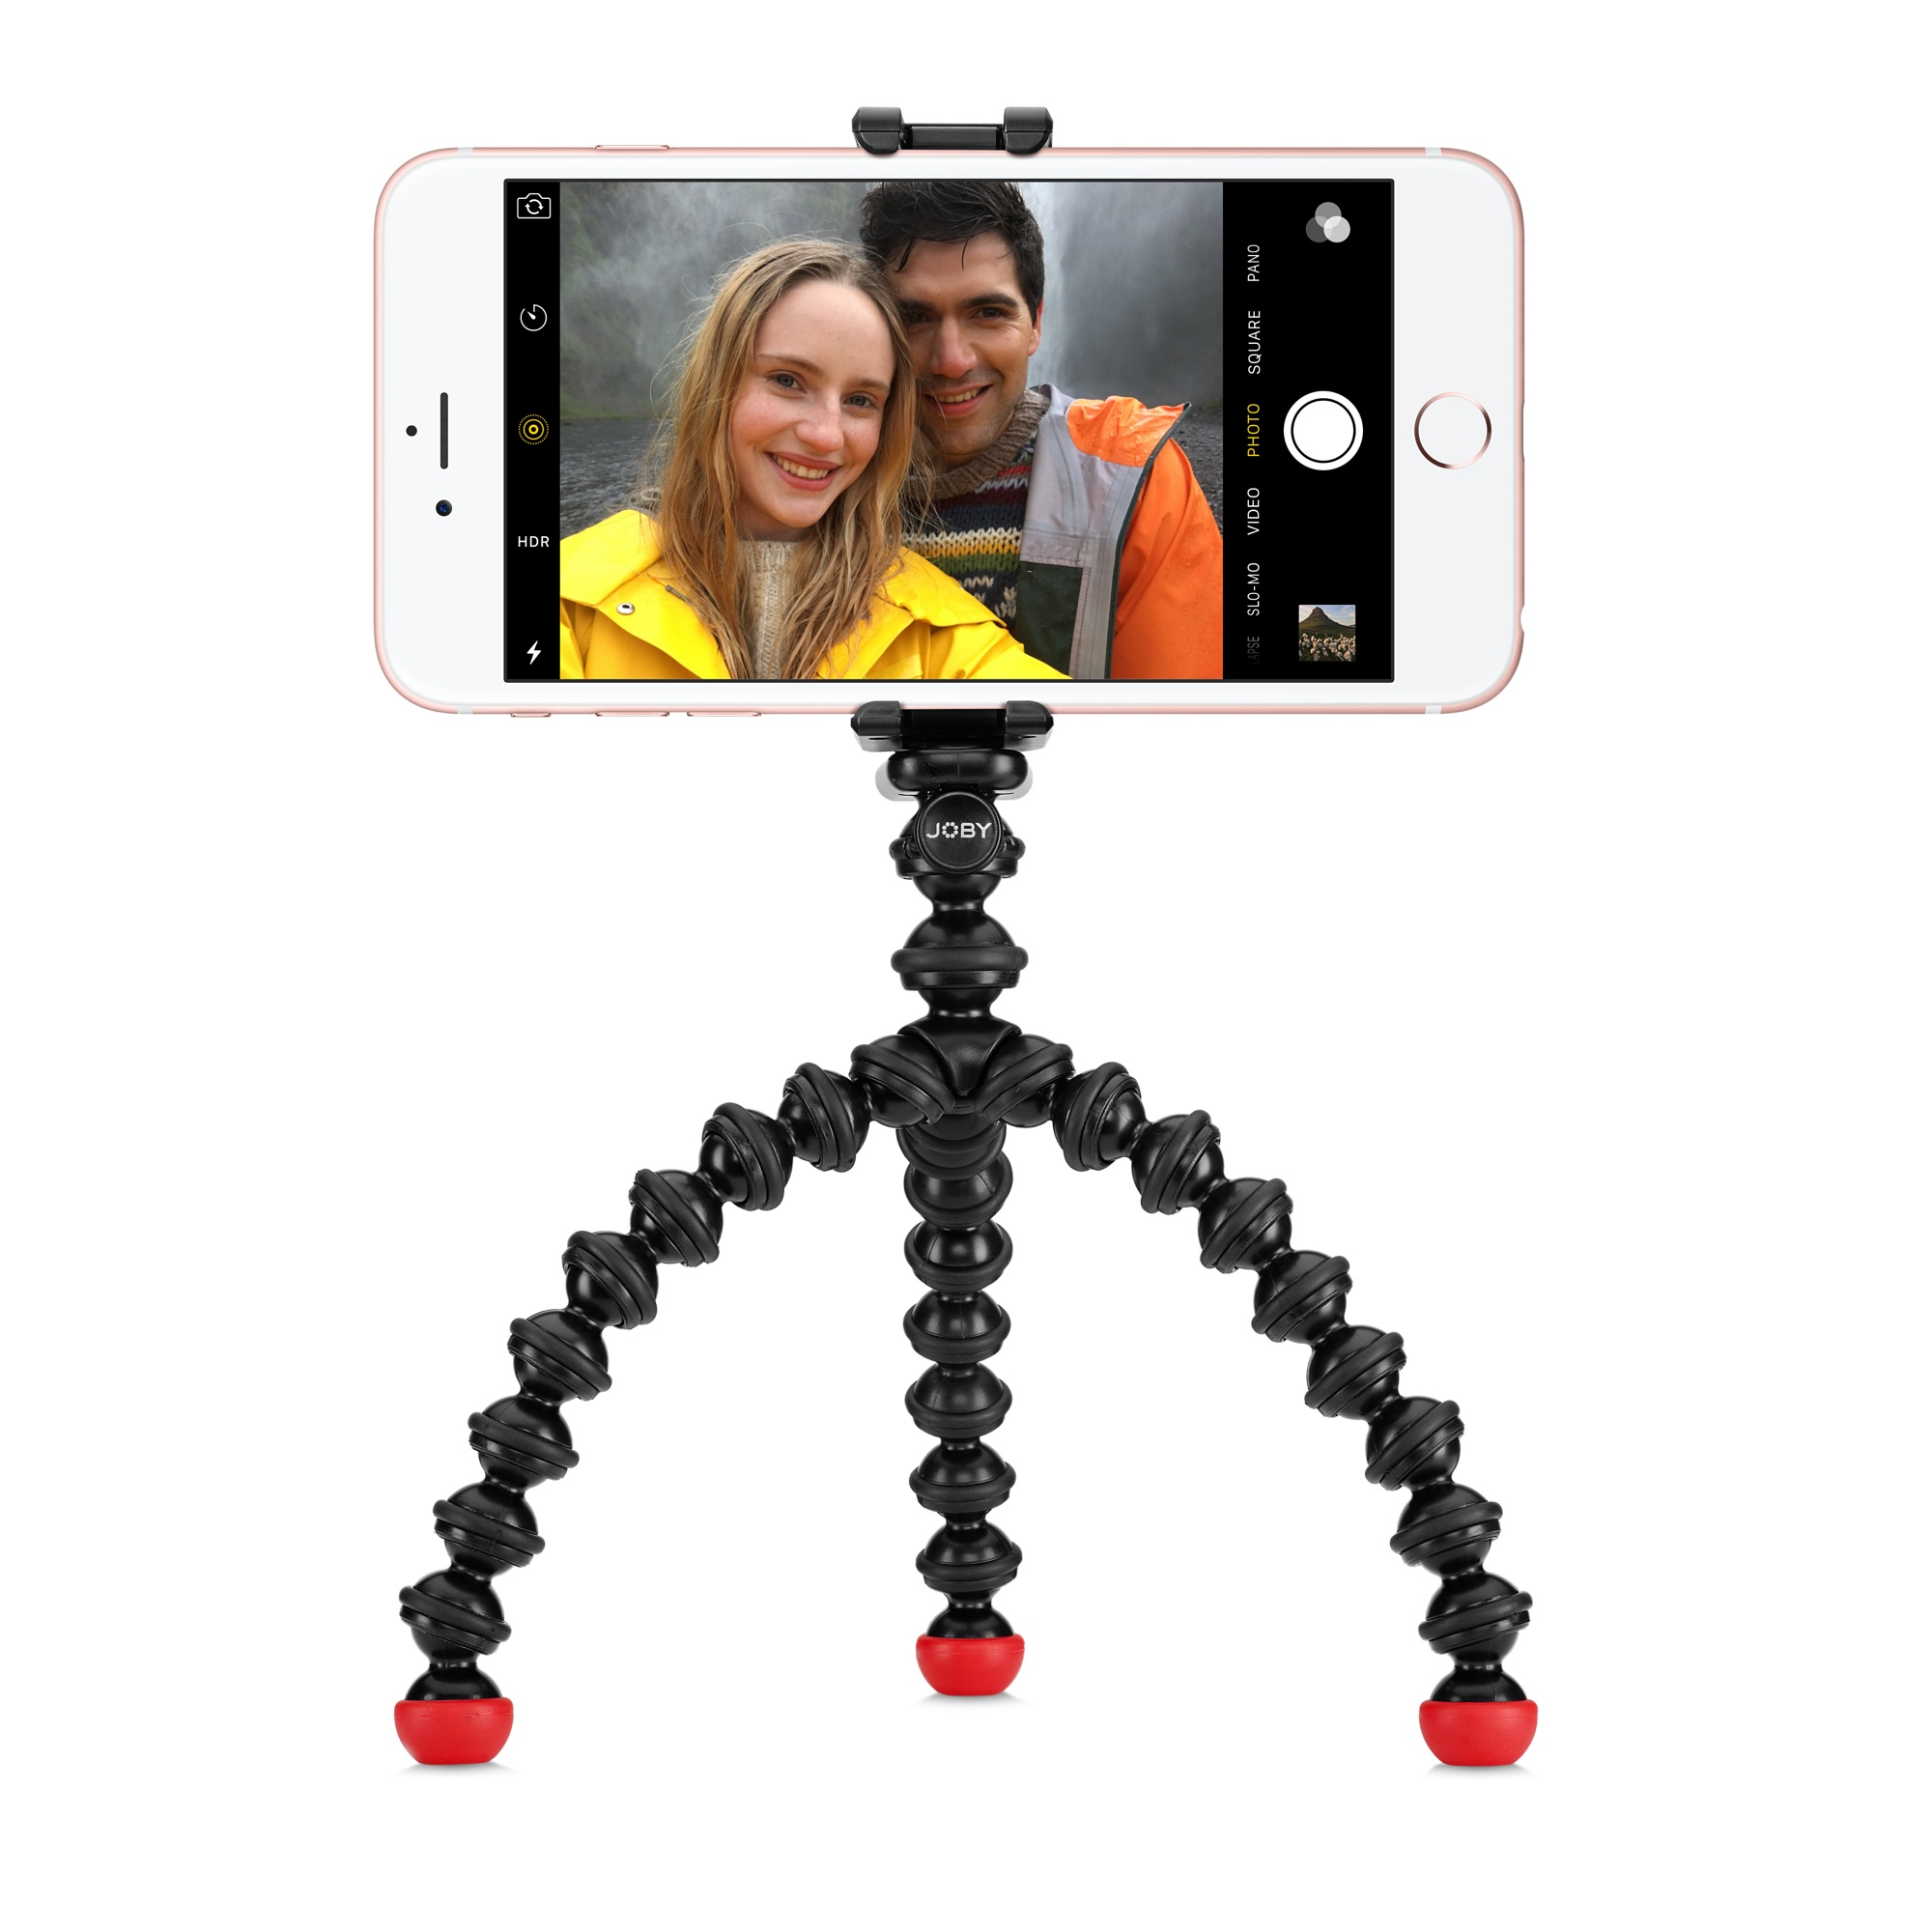 JOBY-GripTight-GorillaPod-Magnetic-Mount-and-Tripod-for-iPhone